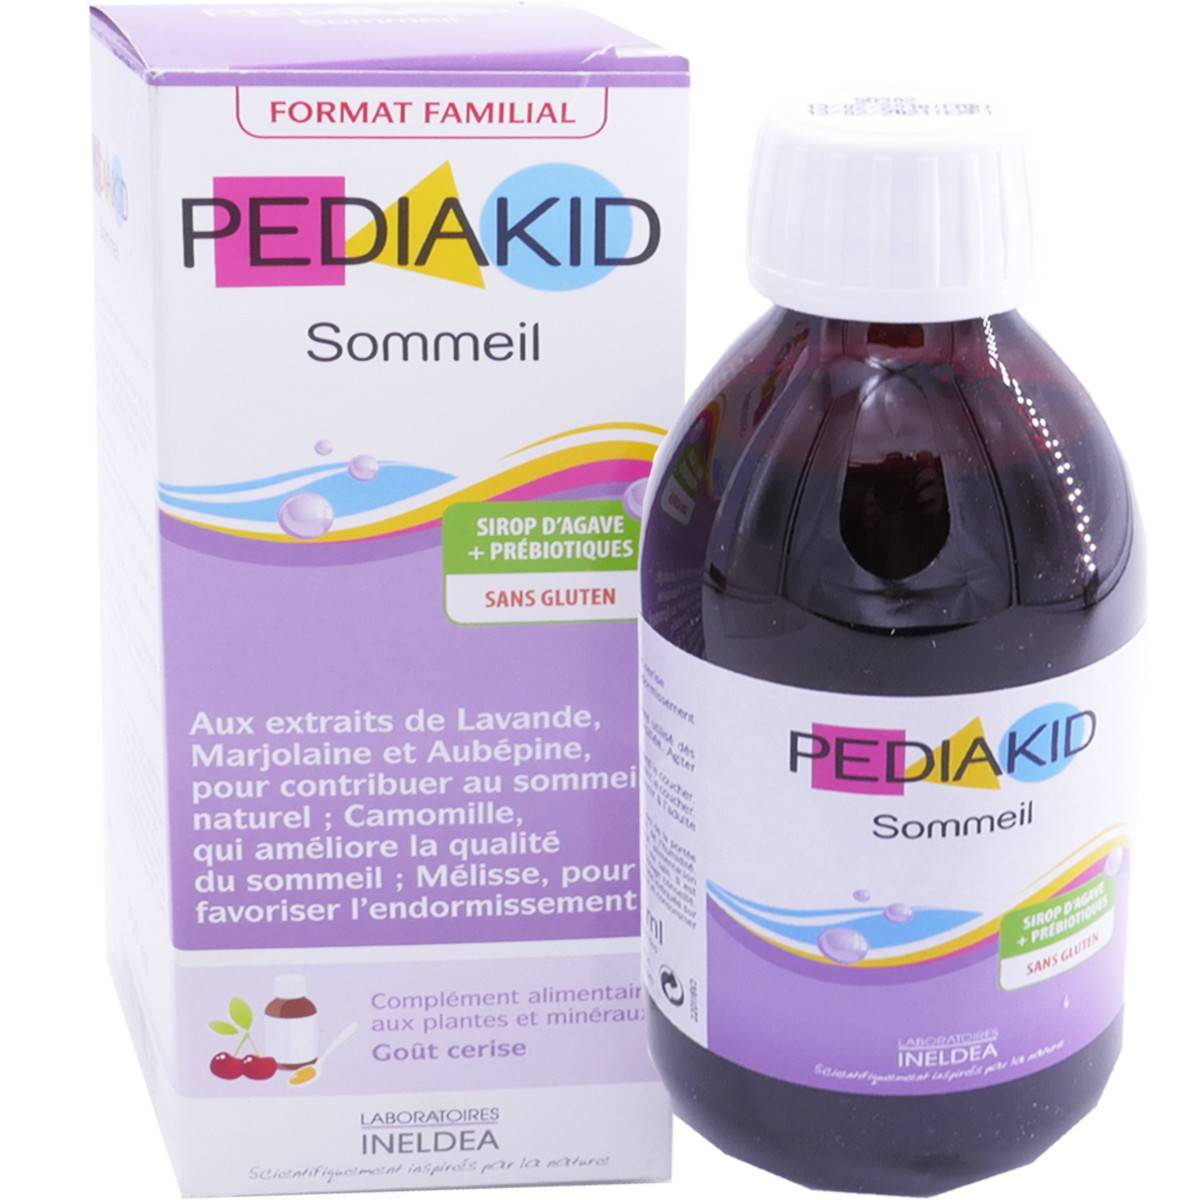 Pediakid sommeil sirop d'agave 250ml